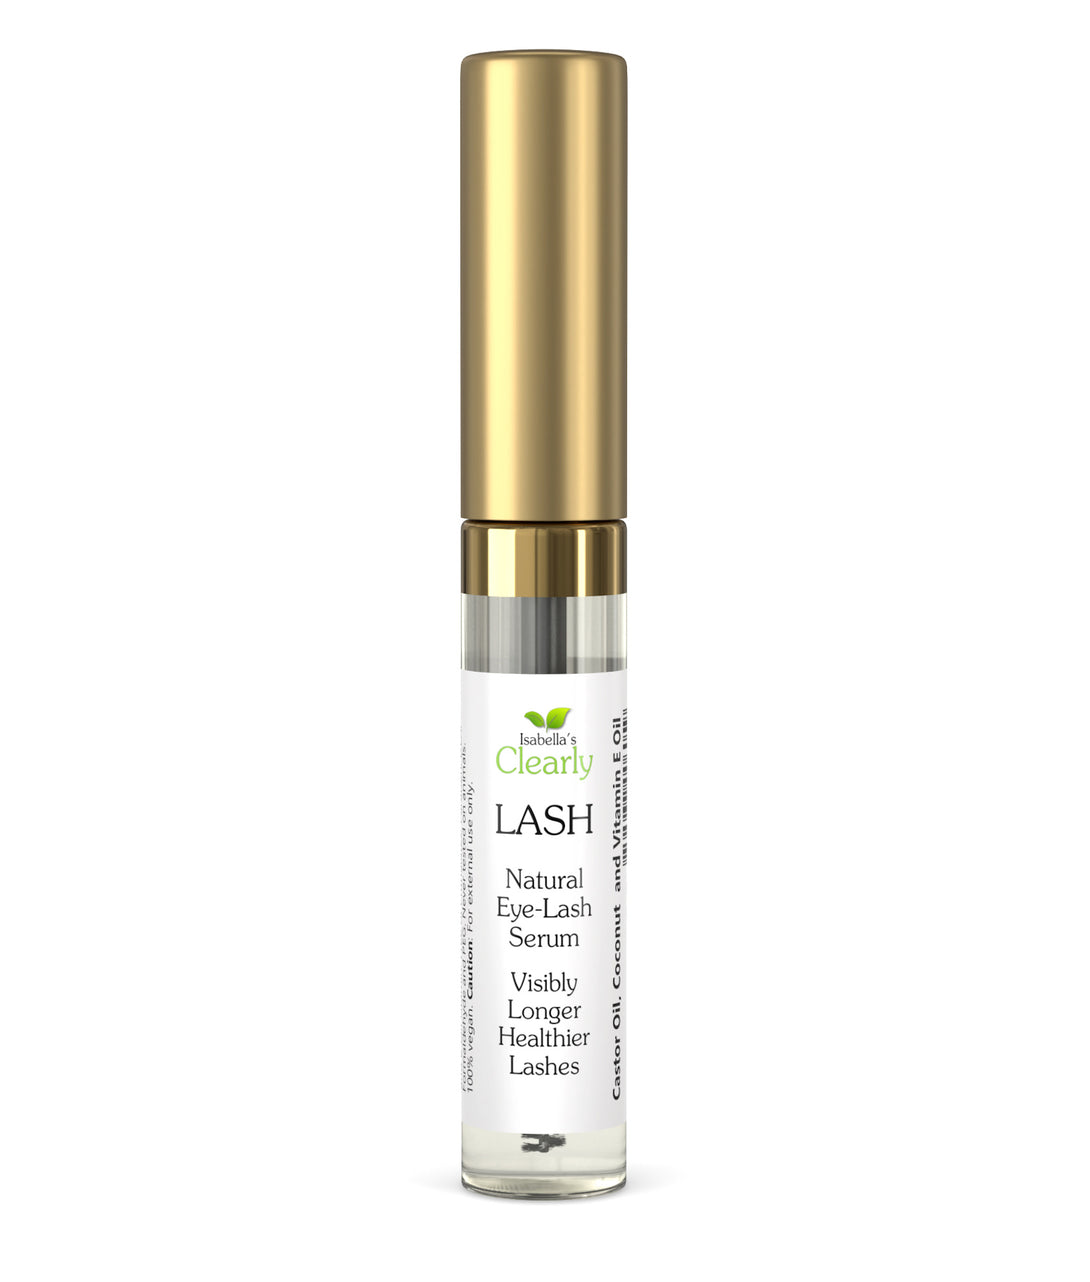 Clearly Lash, Eyelash And Eyebrow Growth Serum